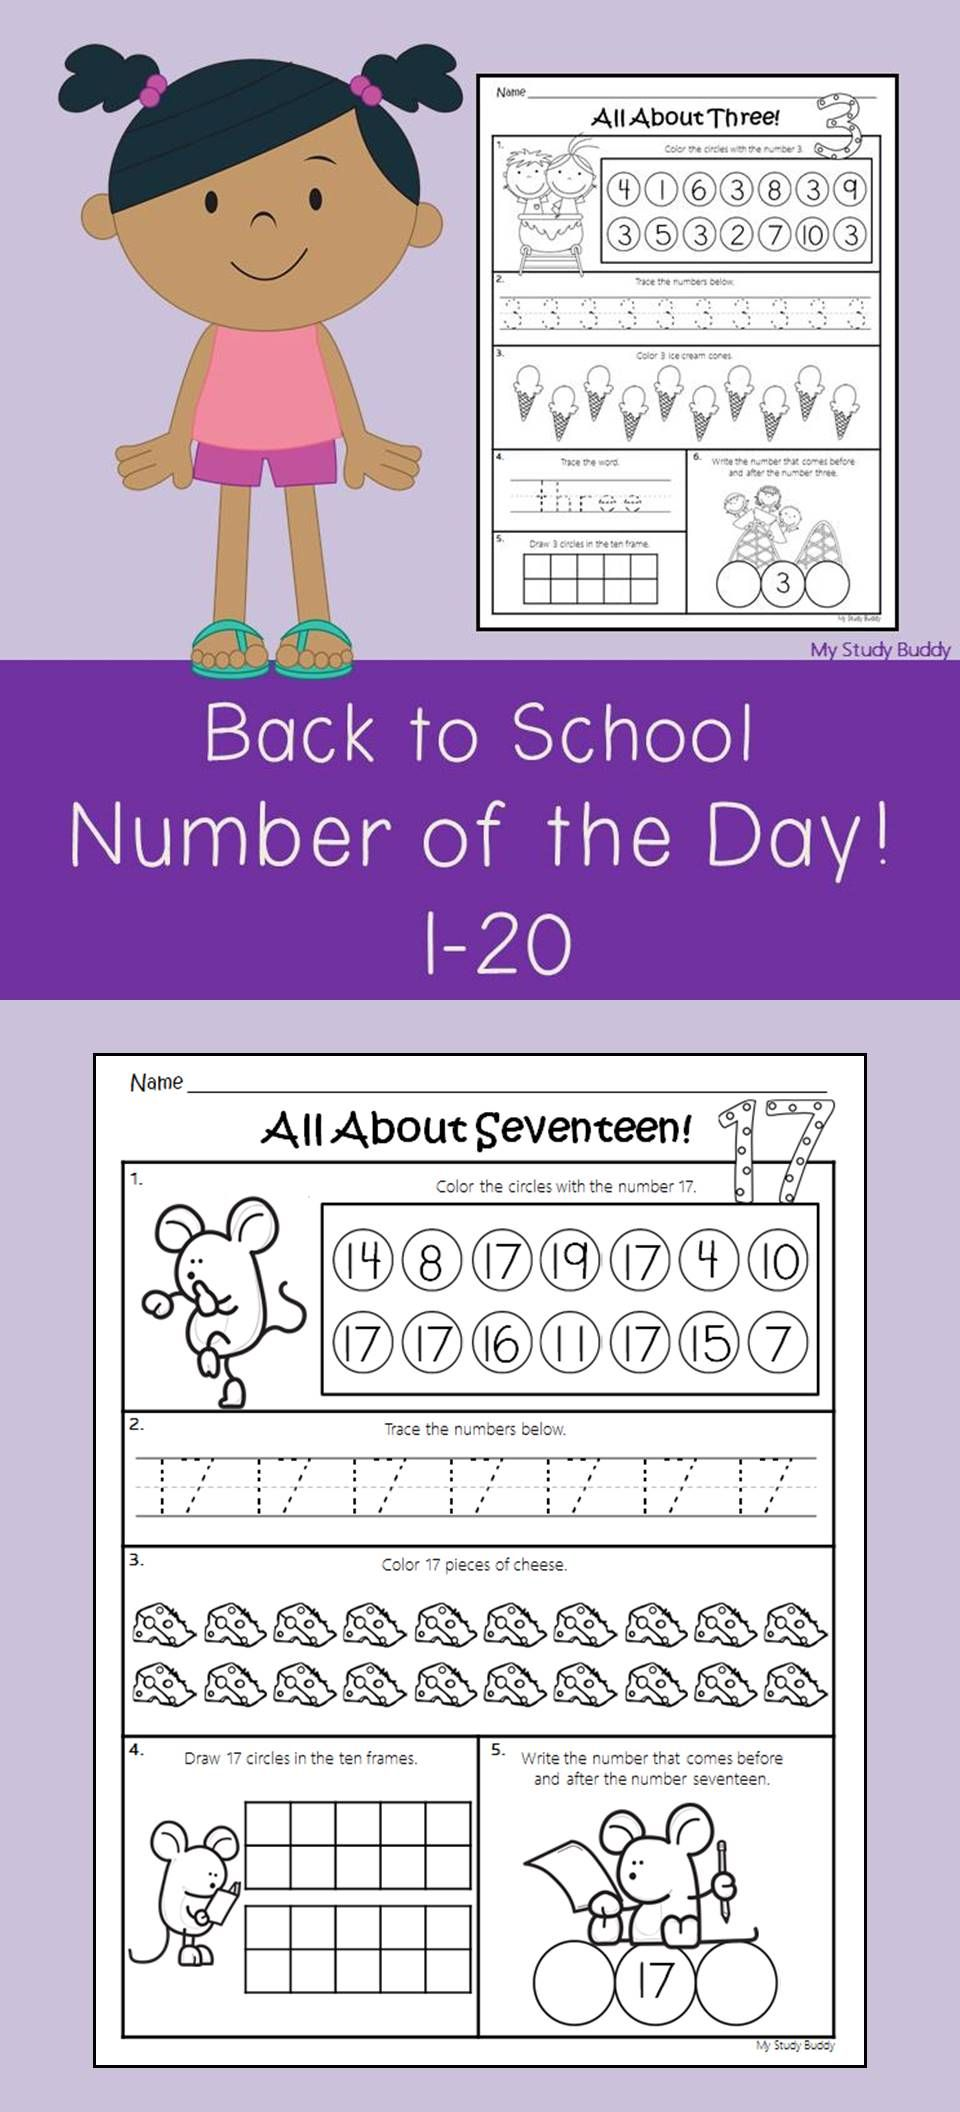 Back To School Number Of The Day Numbers 1 20 For Kindergarten